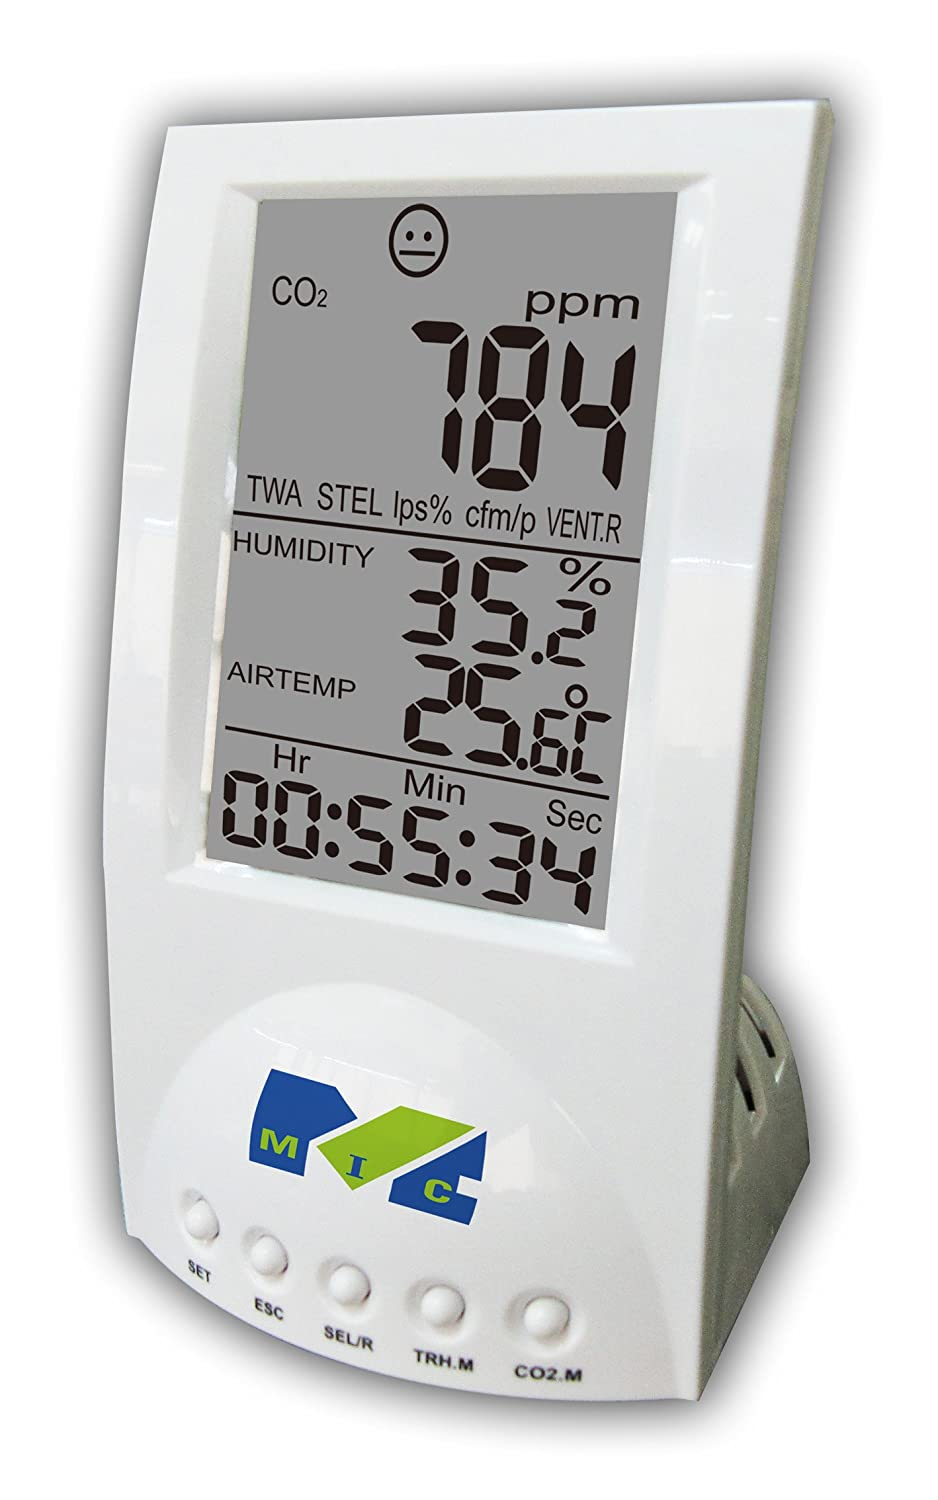 MIC 98130 Desktop CO2 Indoor Air Quality Monitor for Carbon